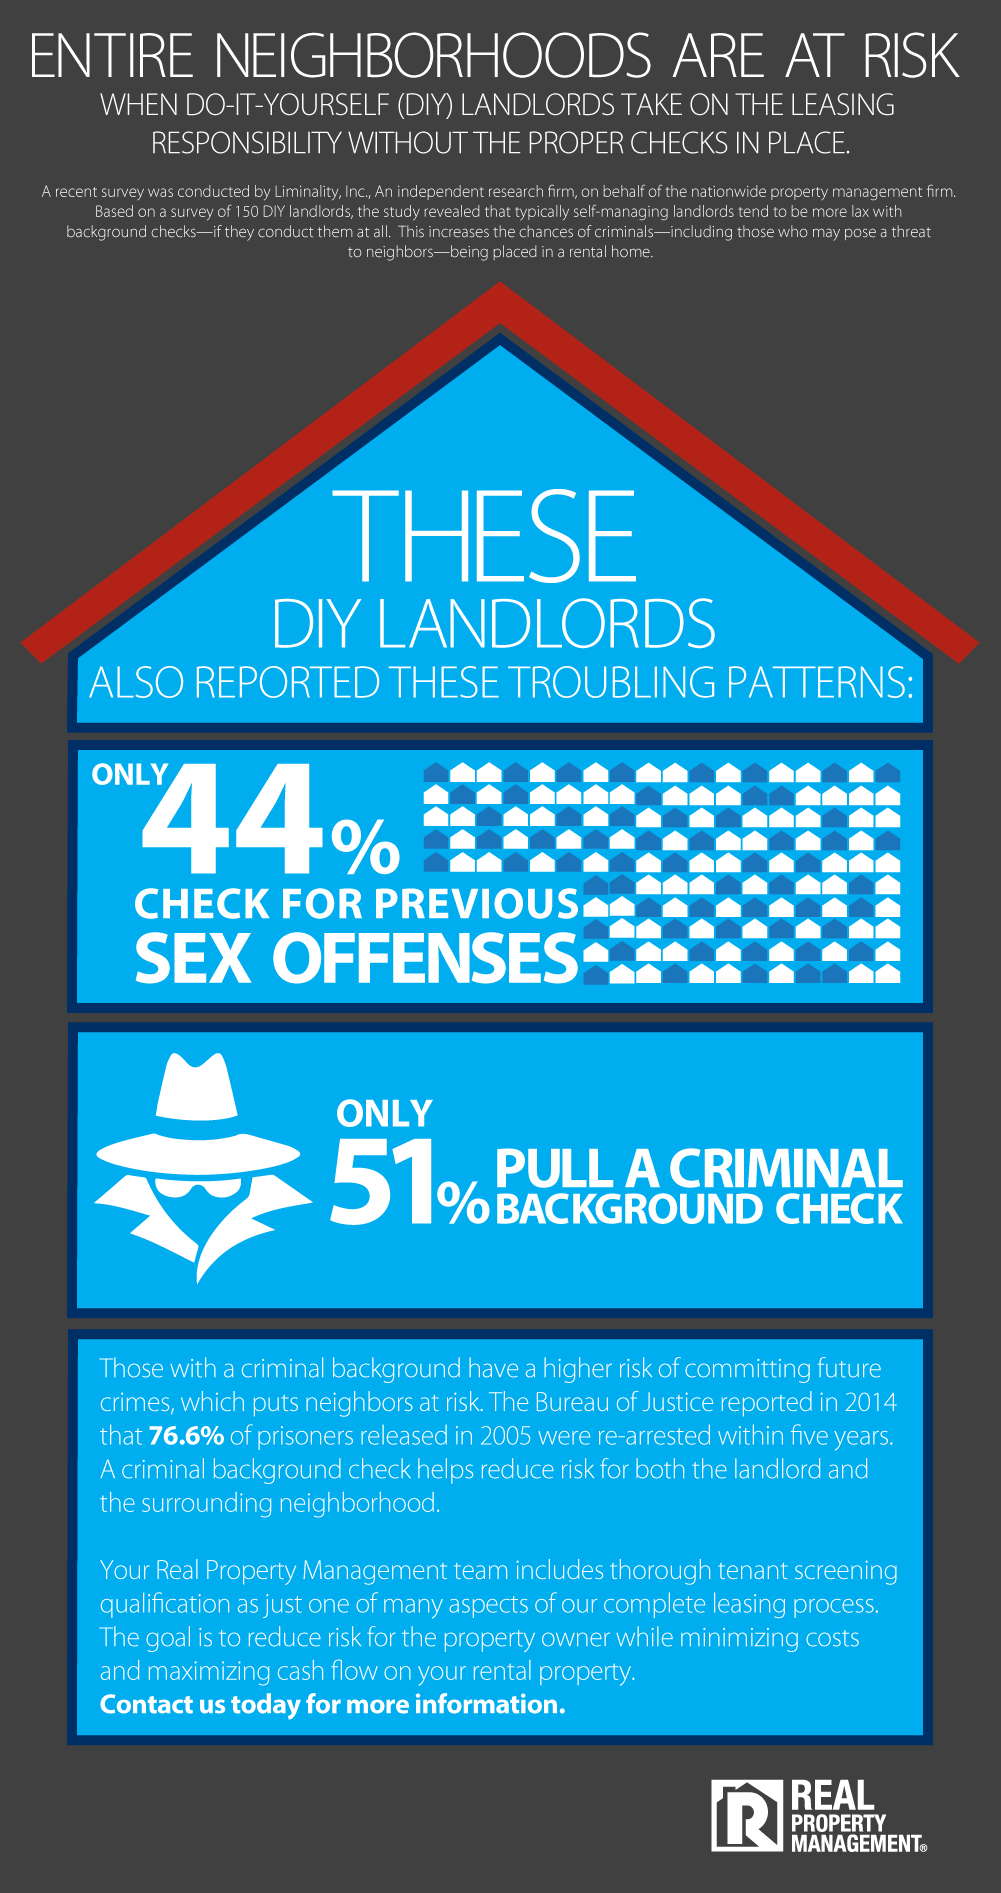 tenant background checks infographic